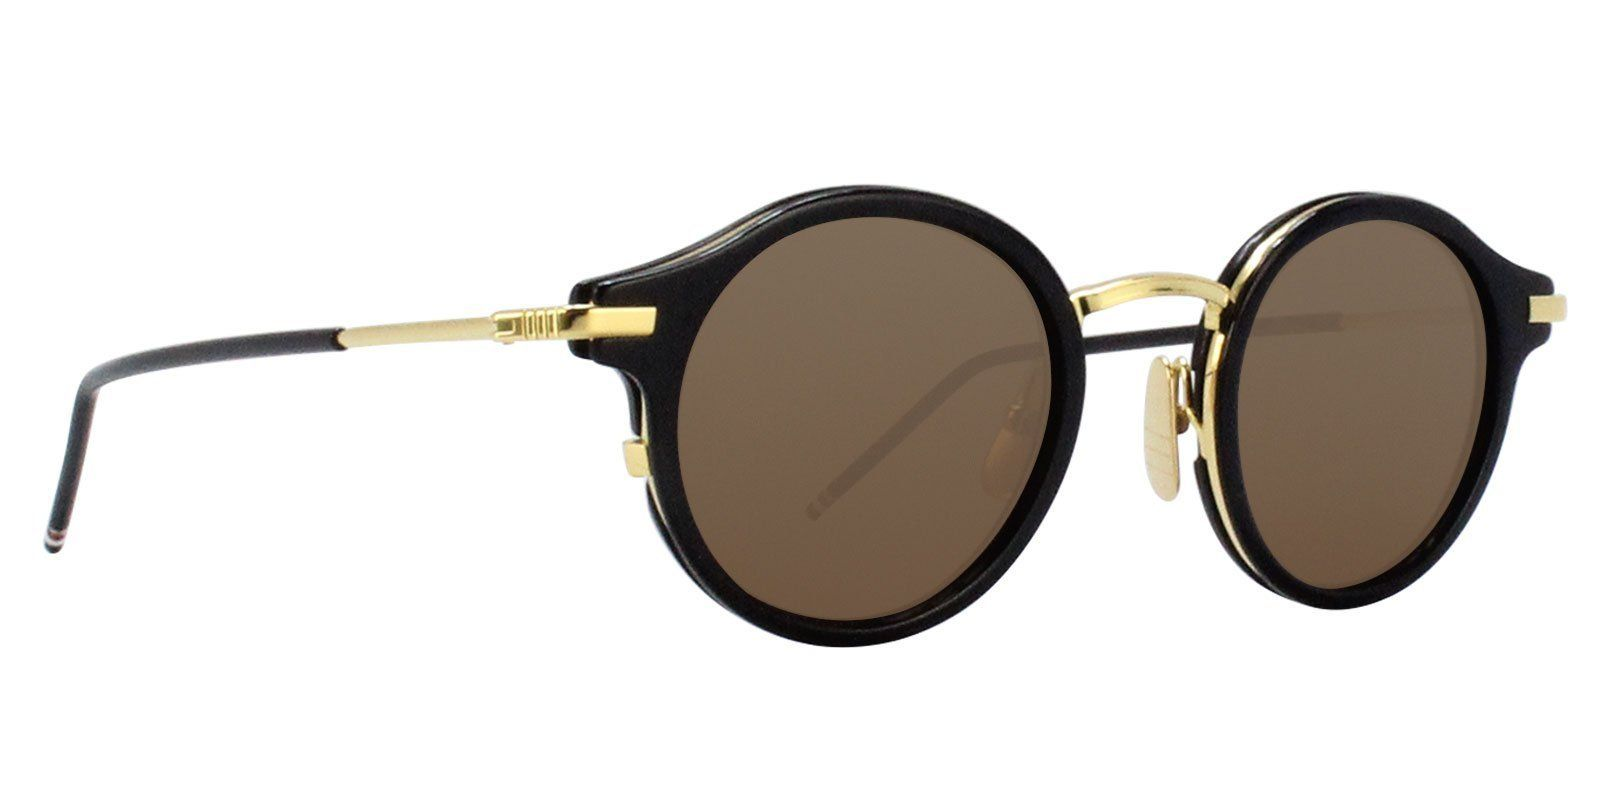 48834fa732f Thom Browne - TB-807 Navy - Dark Brown-sunglasses-Designer Eyes ...